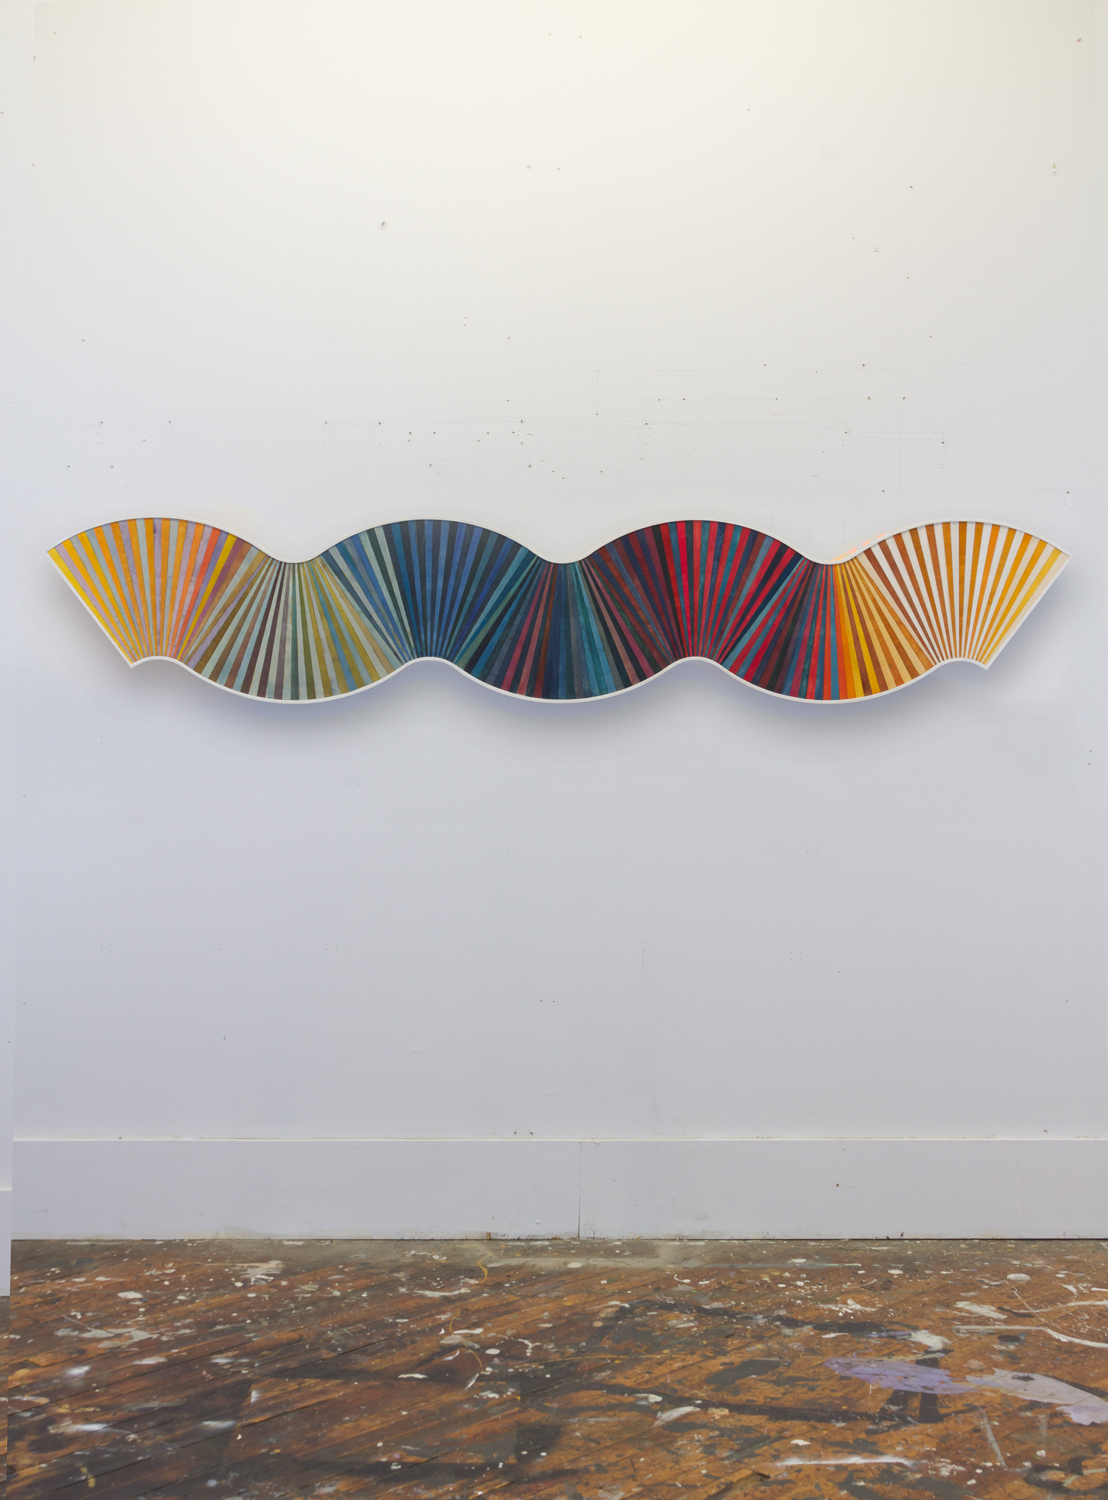 Dann Gunn, to Fan No. 2, 2014, dye, polyurethane on plywood, 20 x 88 inches